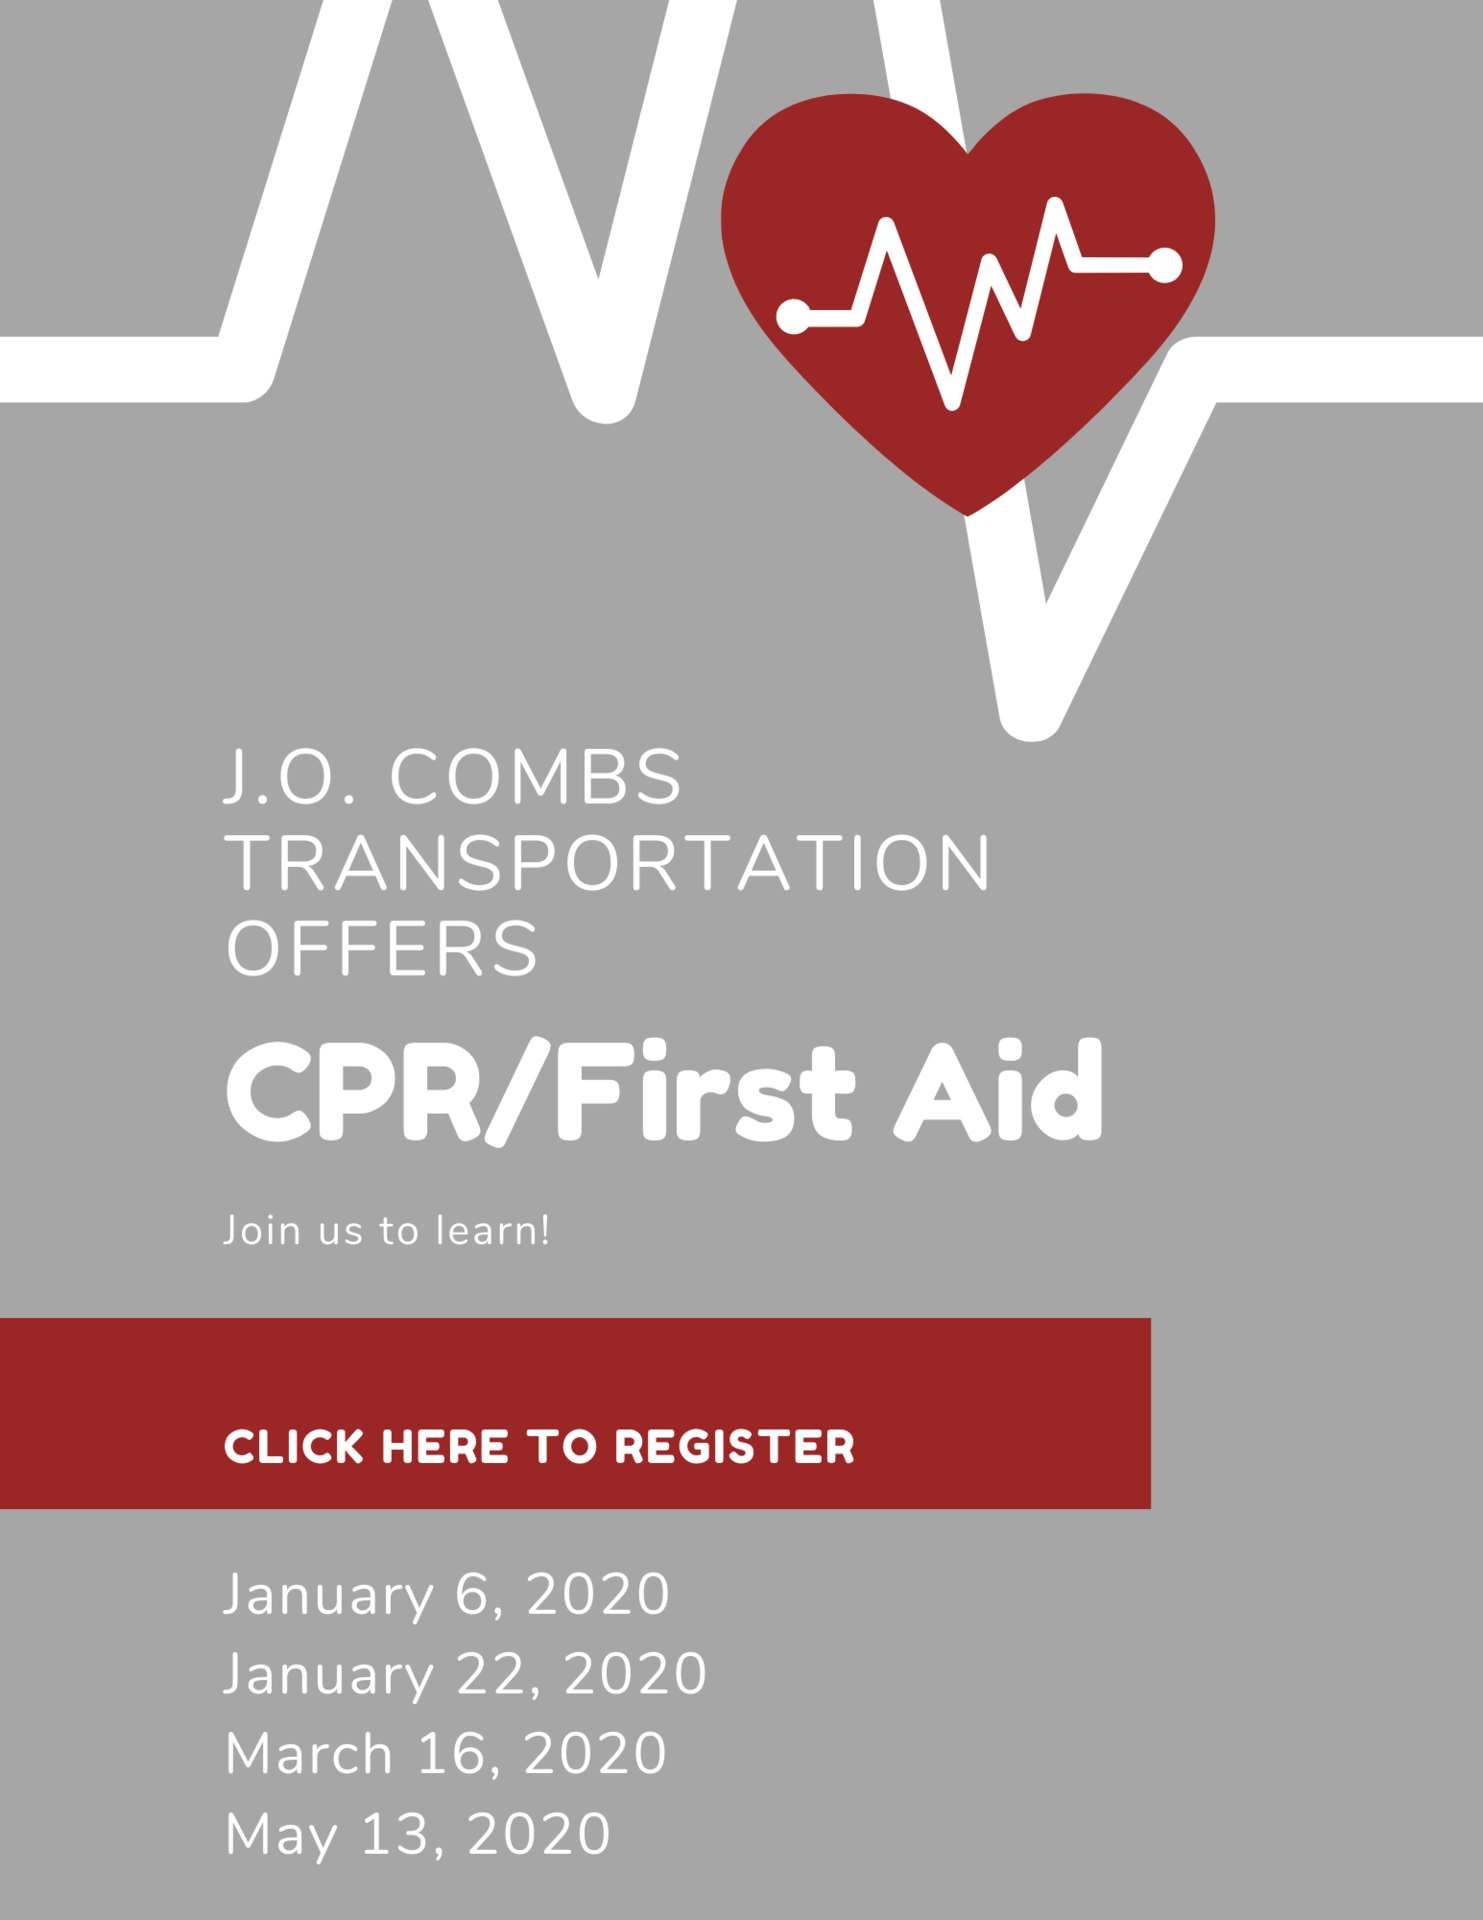 CPR/First Aid Classes